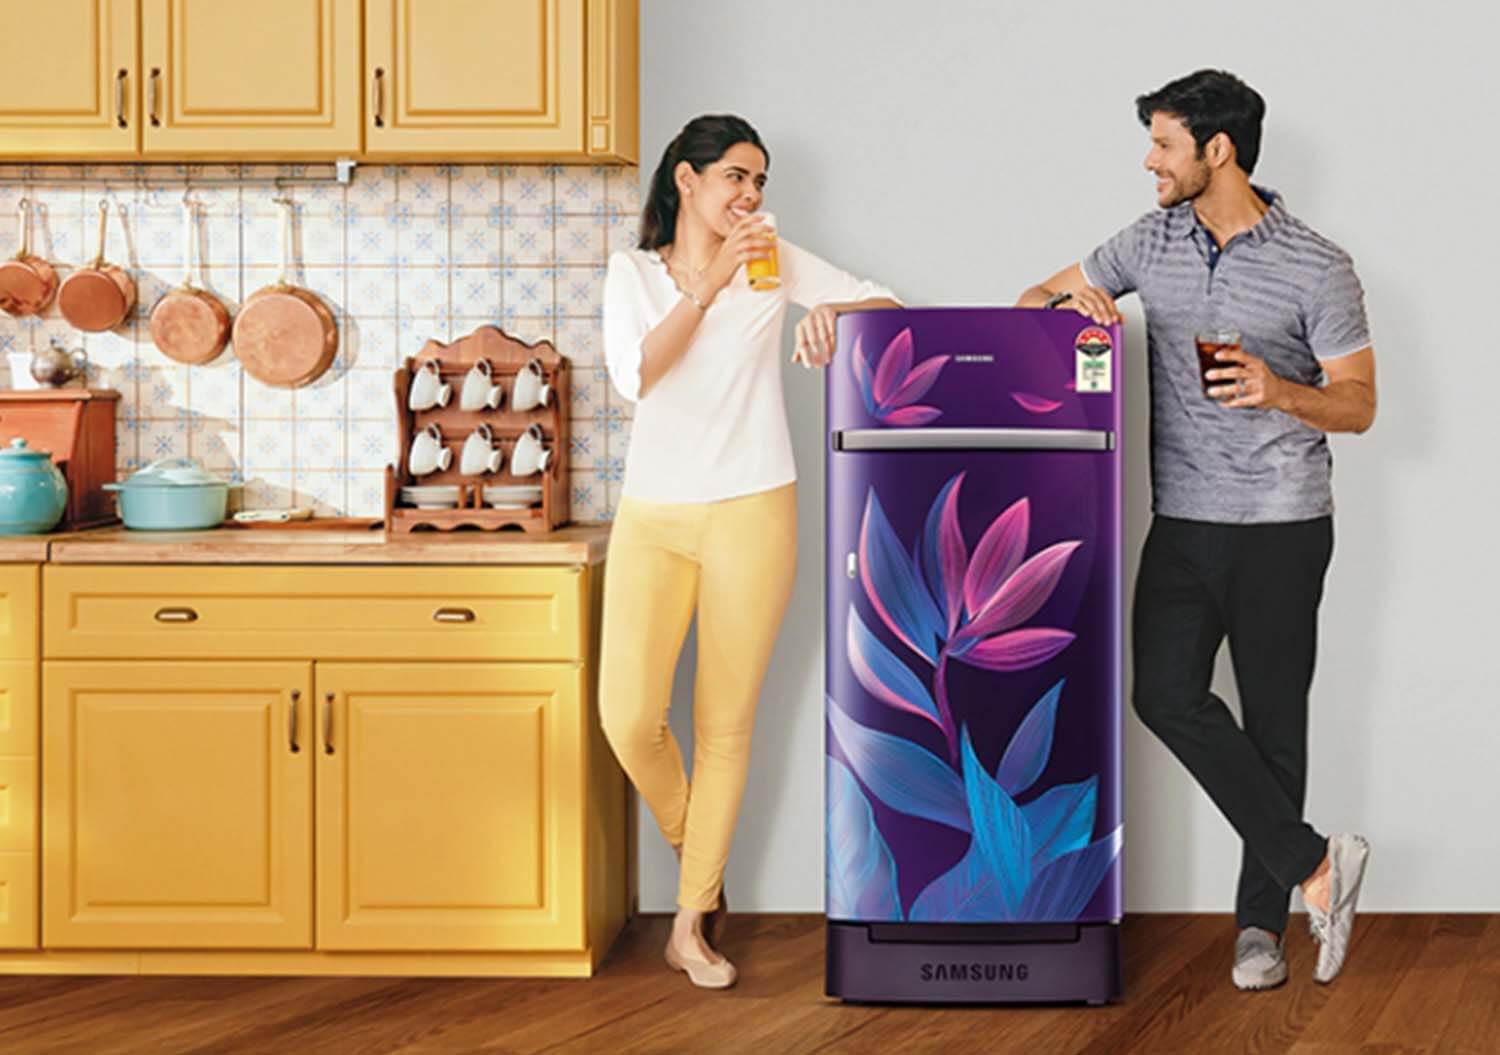 Home Appliances By Samsung Bold Outline India S Leading Online Lifestyle Fashion Travel Magazine